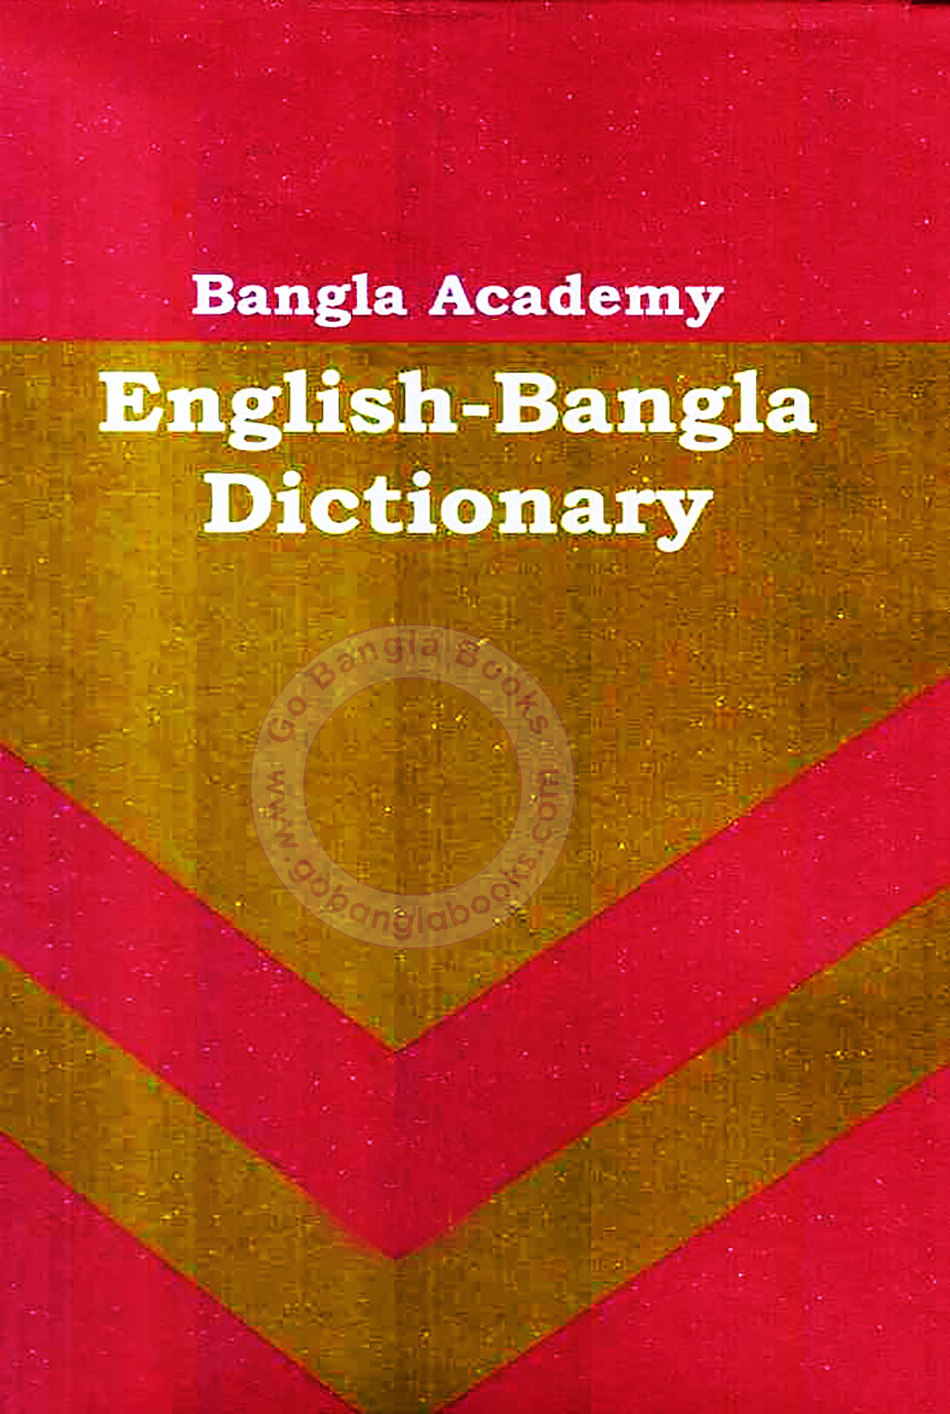 Bangla Dictionary Pdf